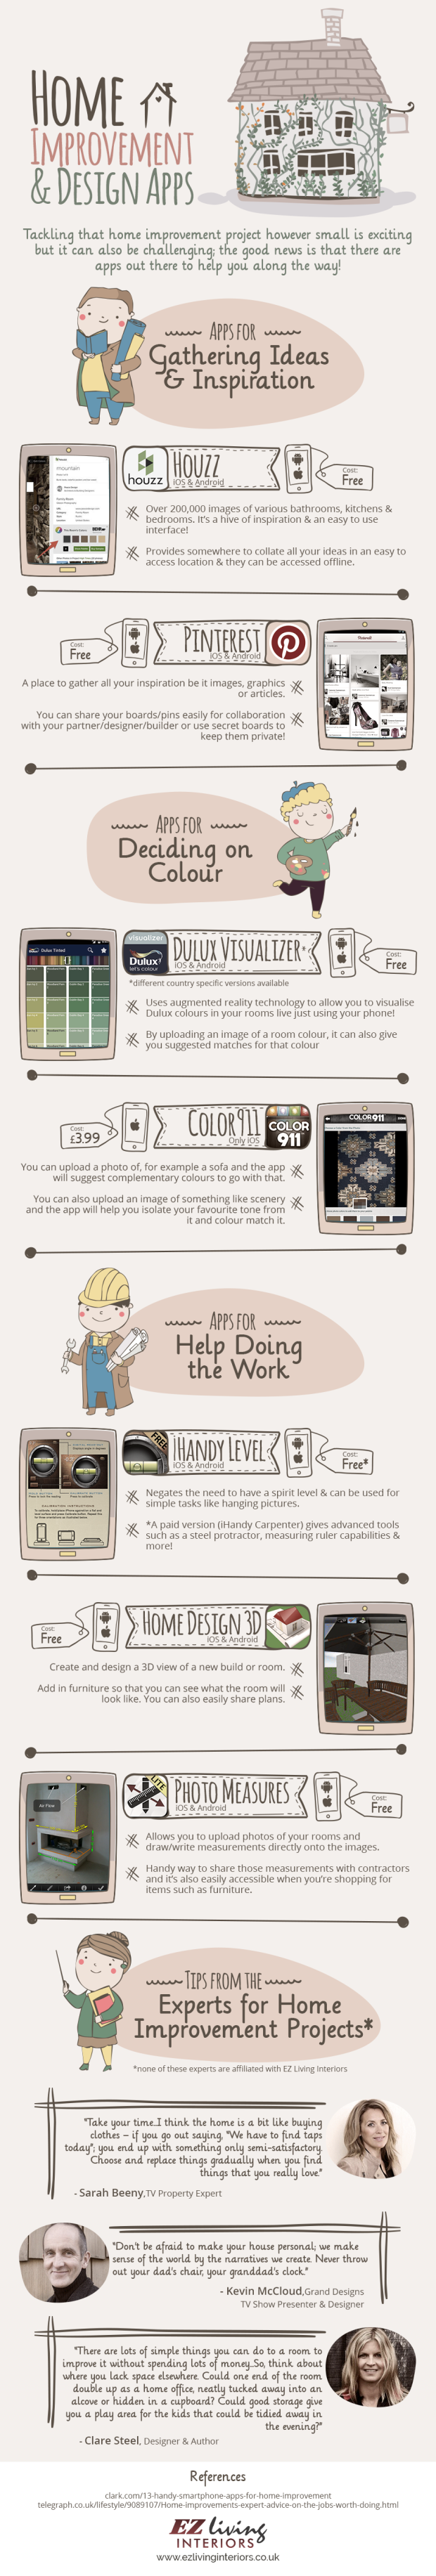 Home Improvement Apps Infographic Negosentro